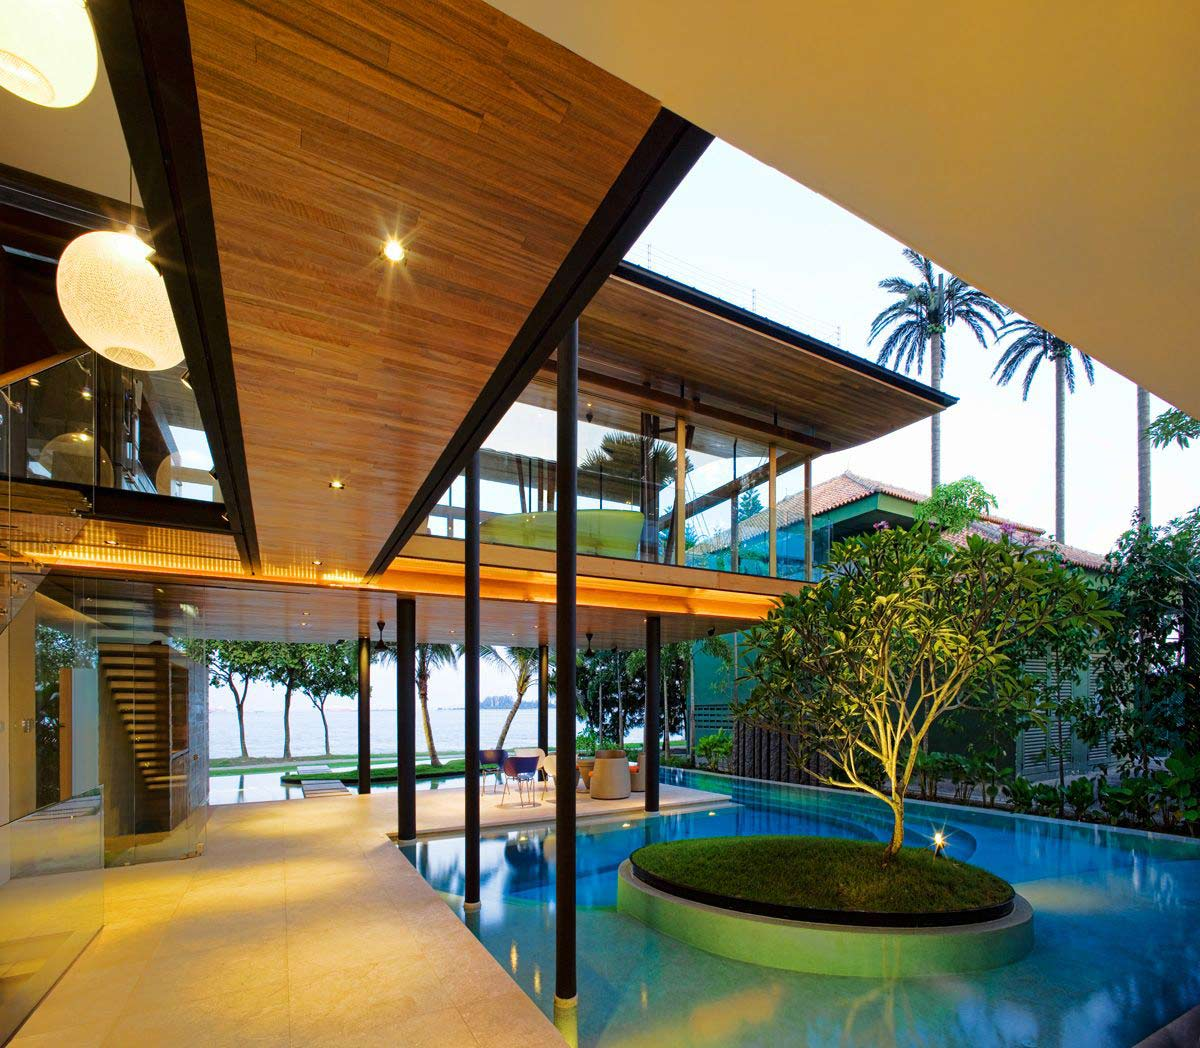 Glass walls terrace pool stunning beachfront home with for Terrace house singapore